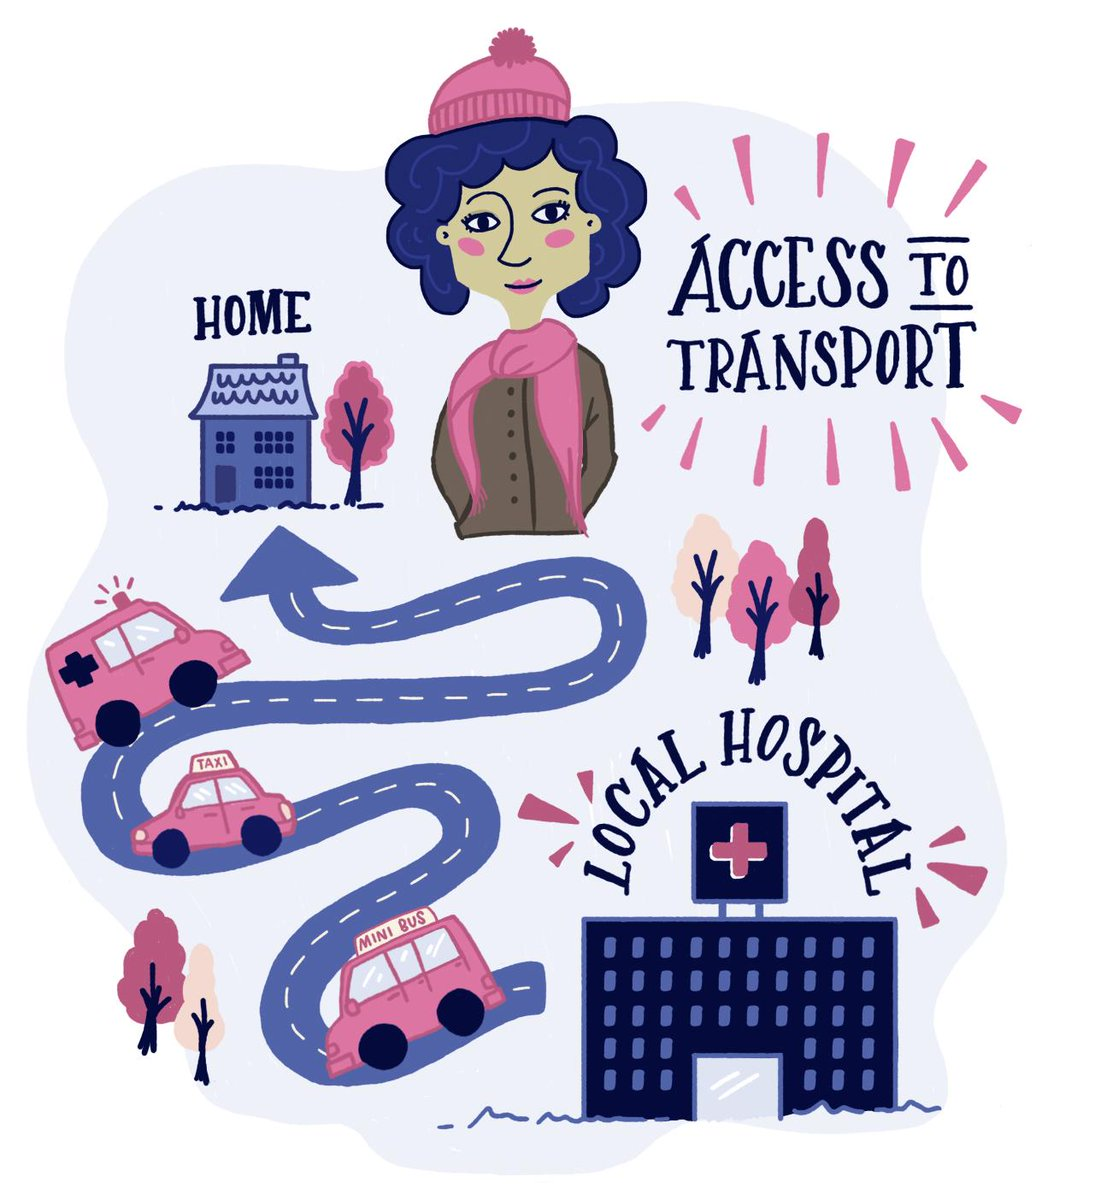 #IWAcancer says patient transport provision should be clearer & more flexible. http://t.co/WIc1Ecwkh2 http://t.co/QAI0kiIdOj